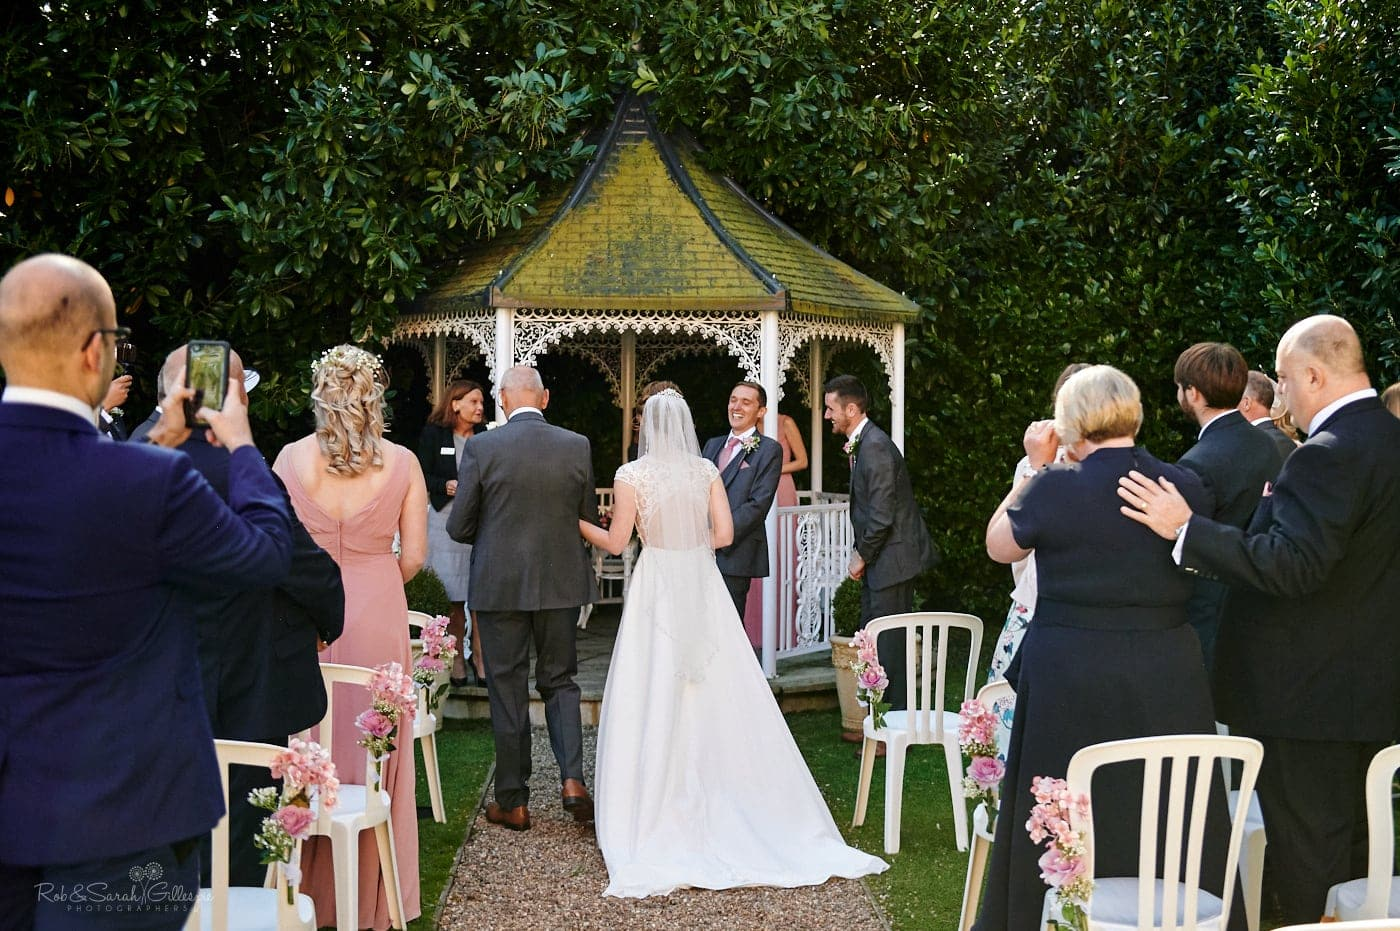 Groom smiling as bride walks up aisle during outdoor wedding ceremony at Pendrell Hall